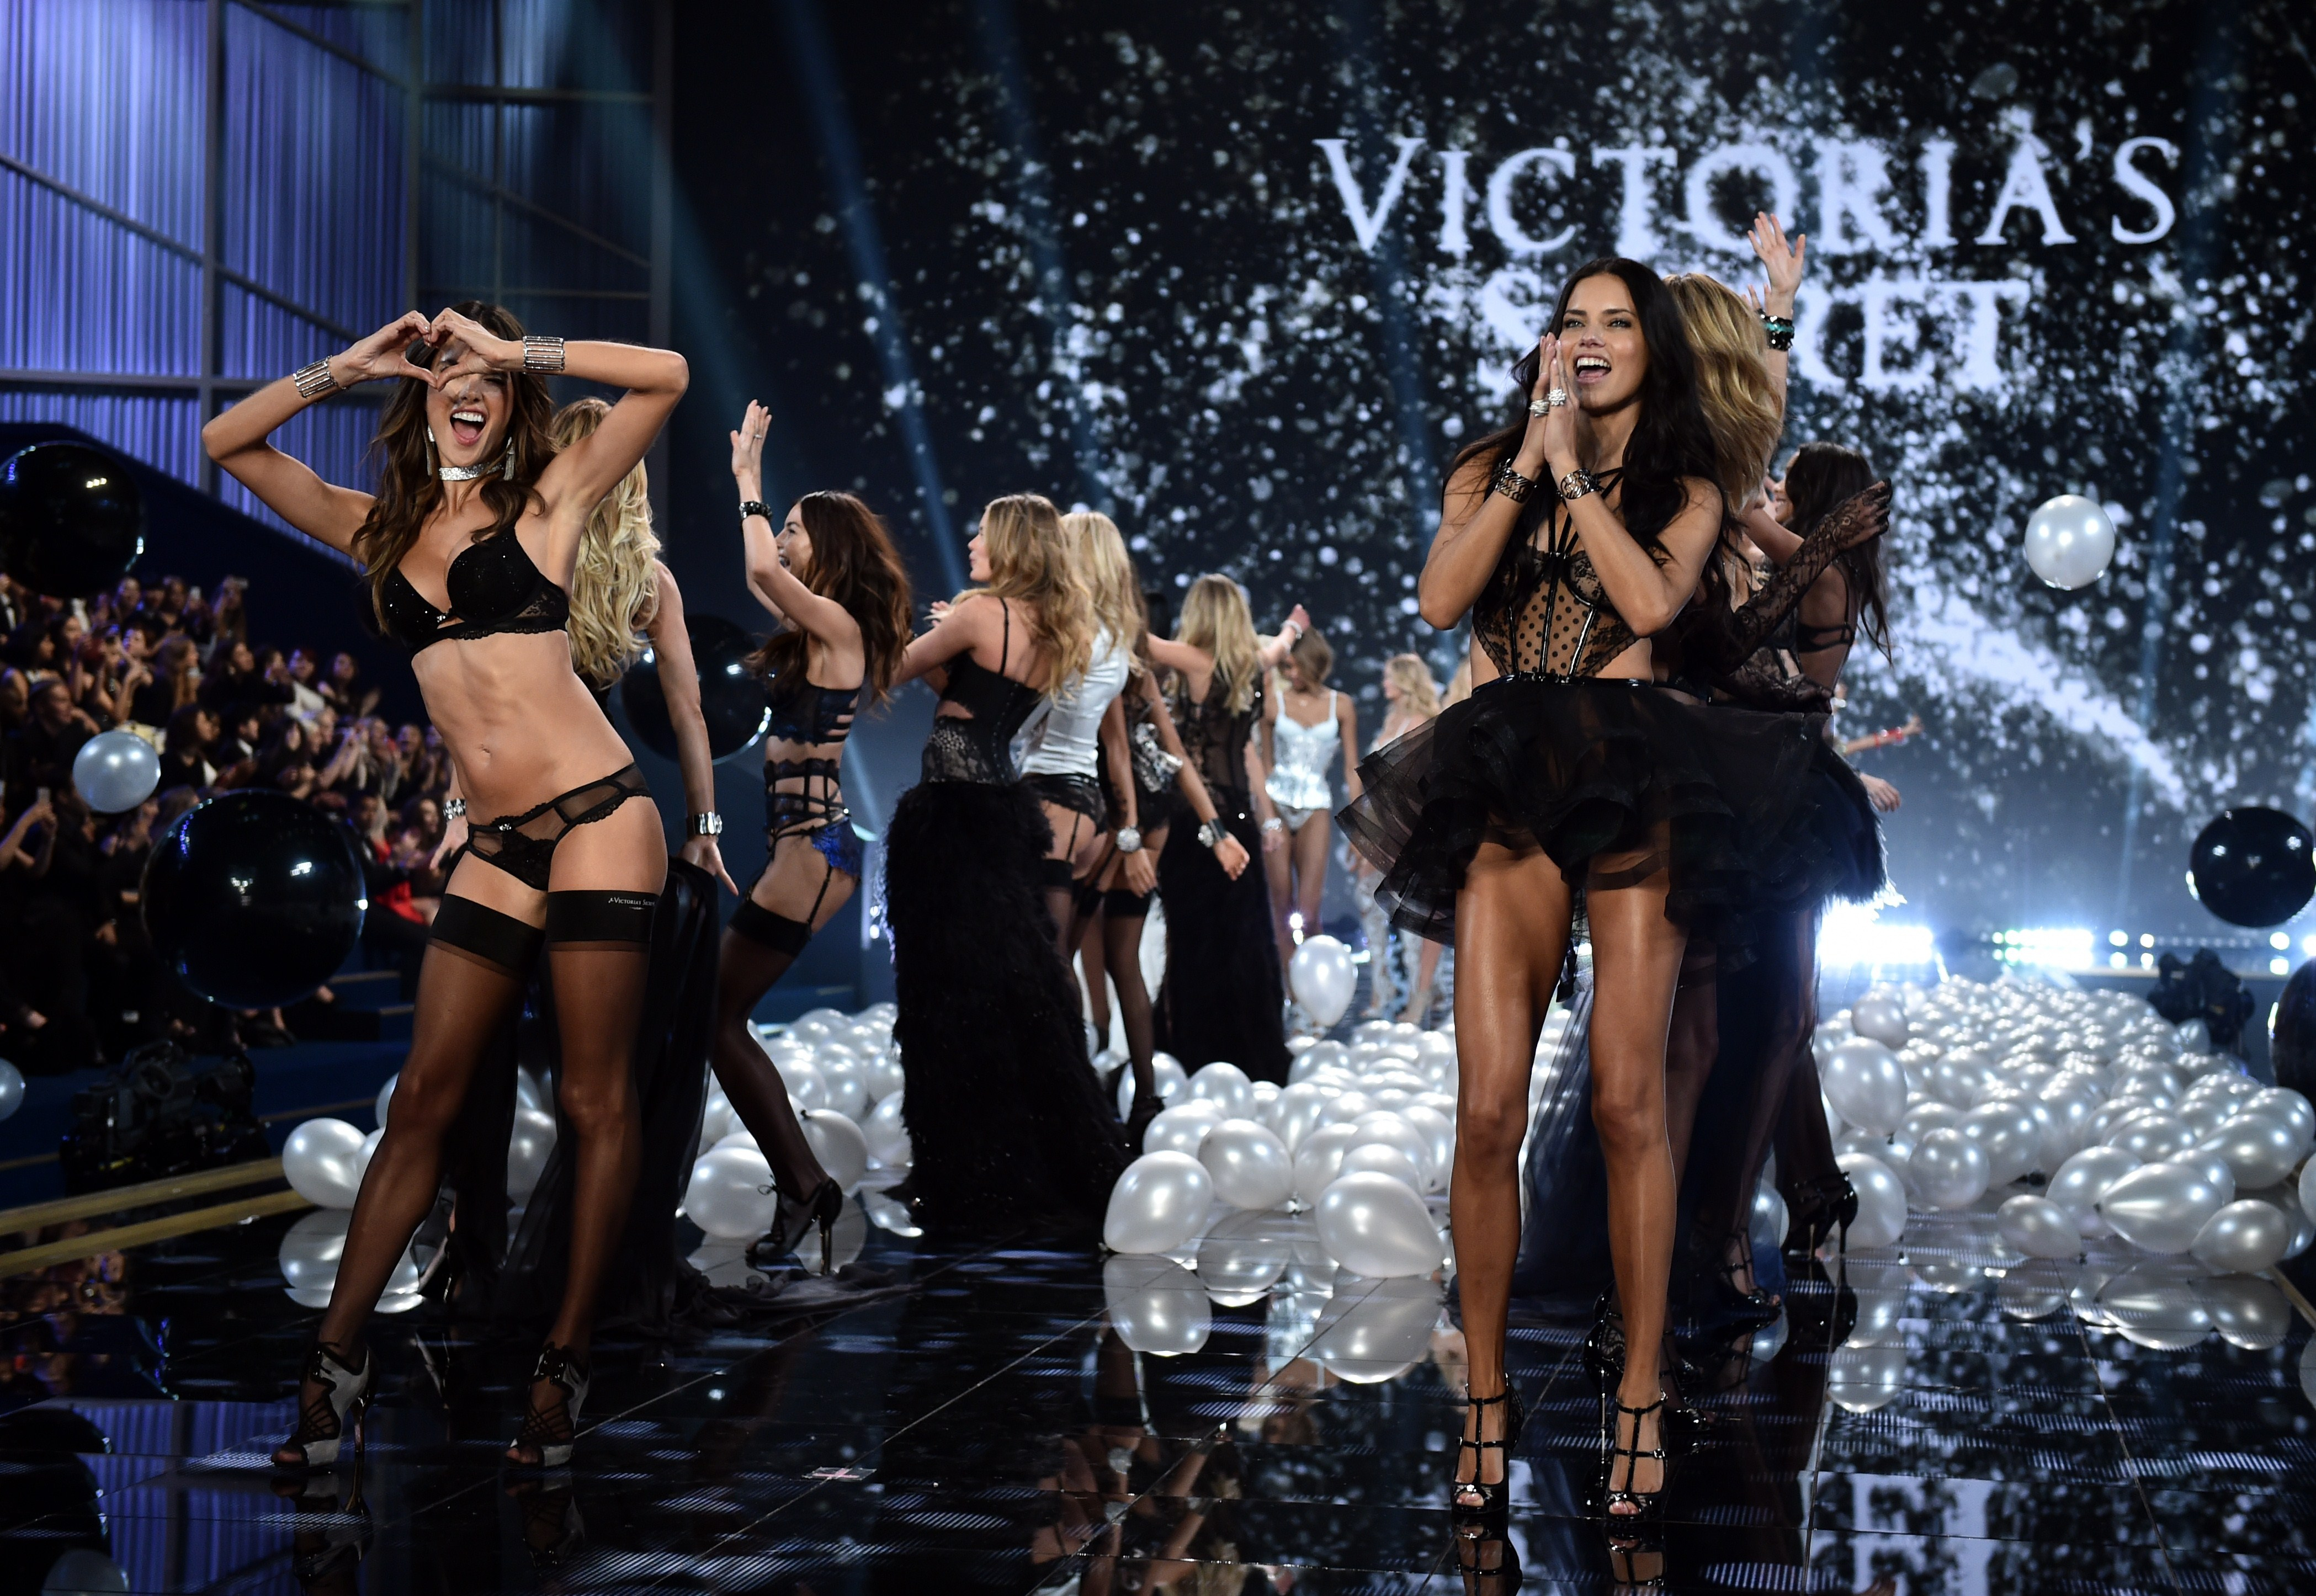 Victoria's Secret Fashion Show Music 2014 Victoria s Secret Fashion Show